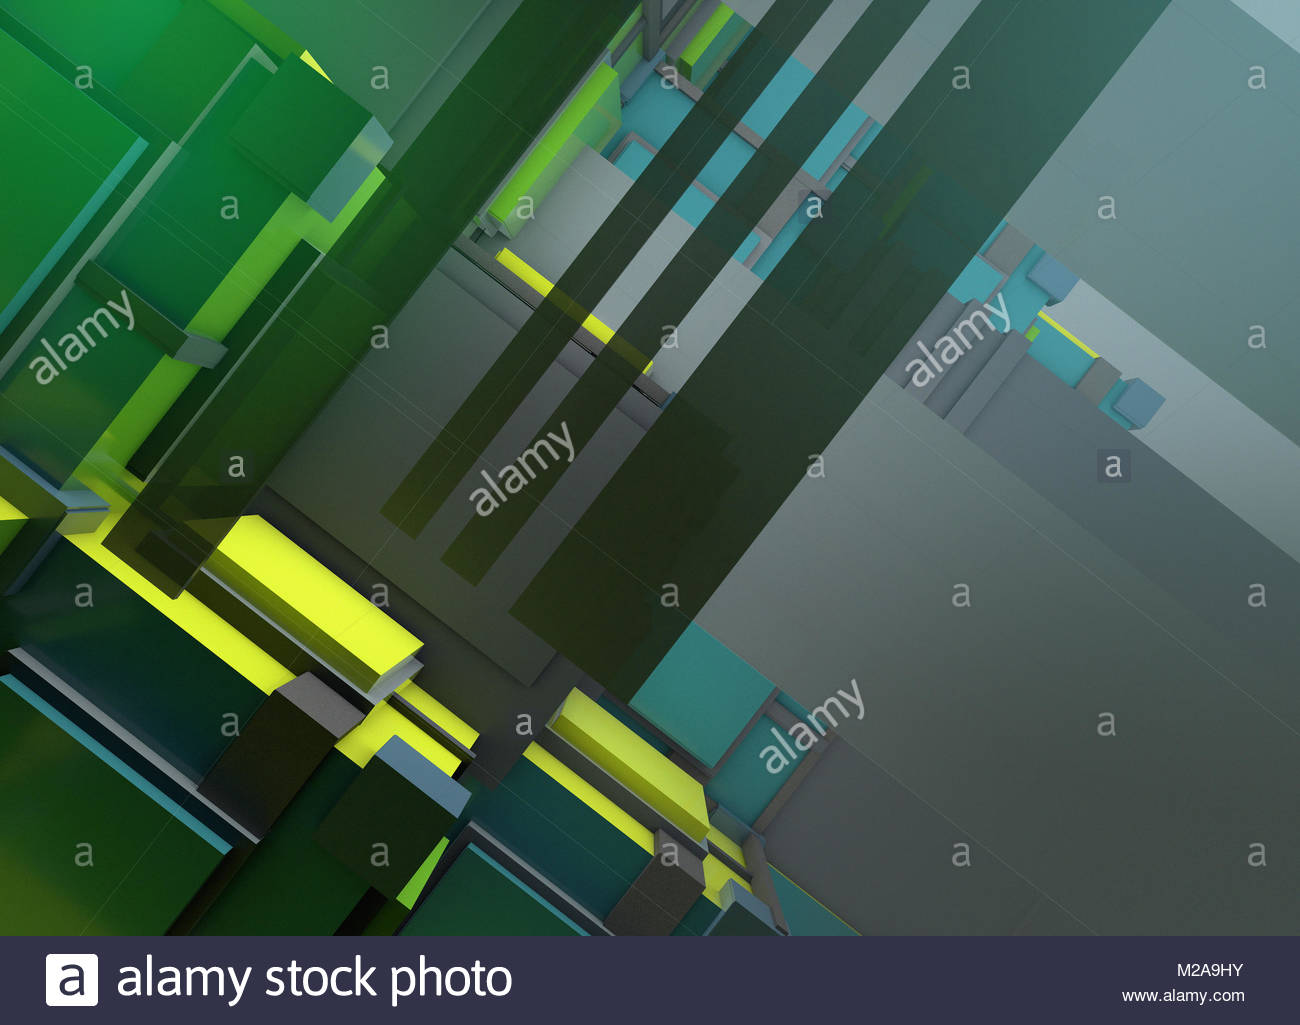 Abstract three dimensional geometric tilted structure - Stock Image